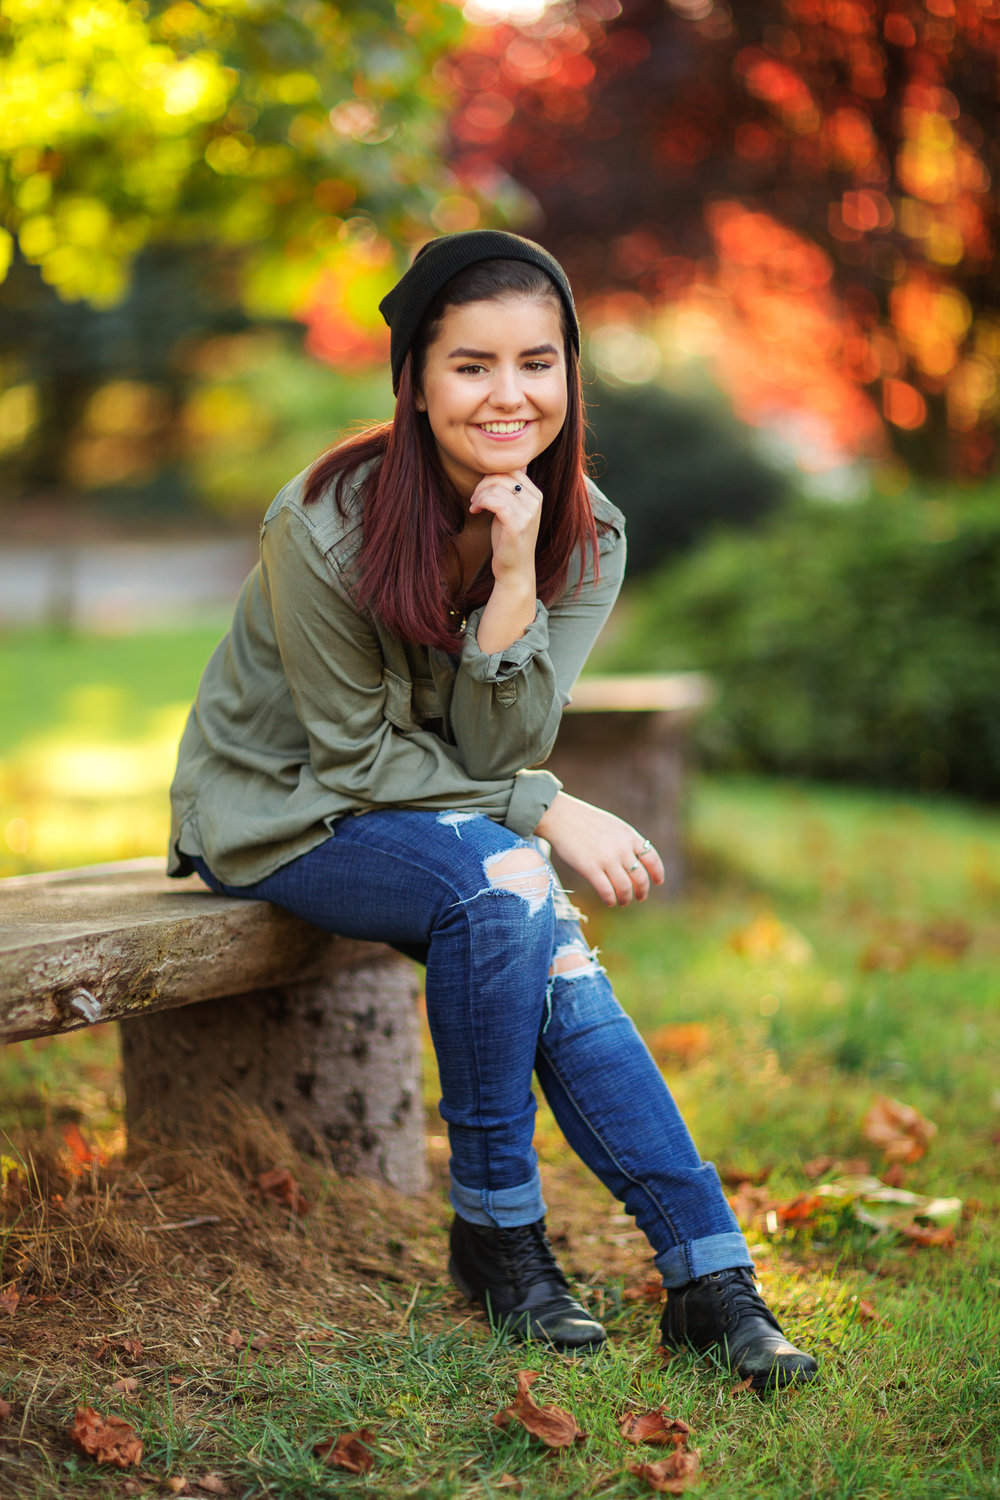 ariellanoellephotography-highschool-senior-portrait-photographer-in-the-monroe-duvall-woodinville-redmond-seattle-area-1-6.jpg